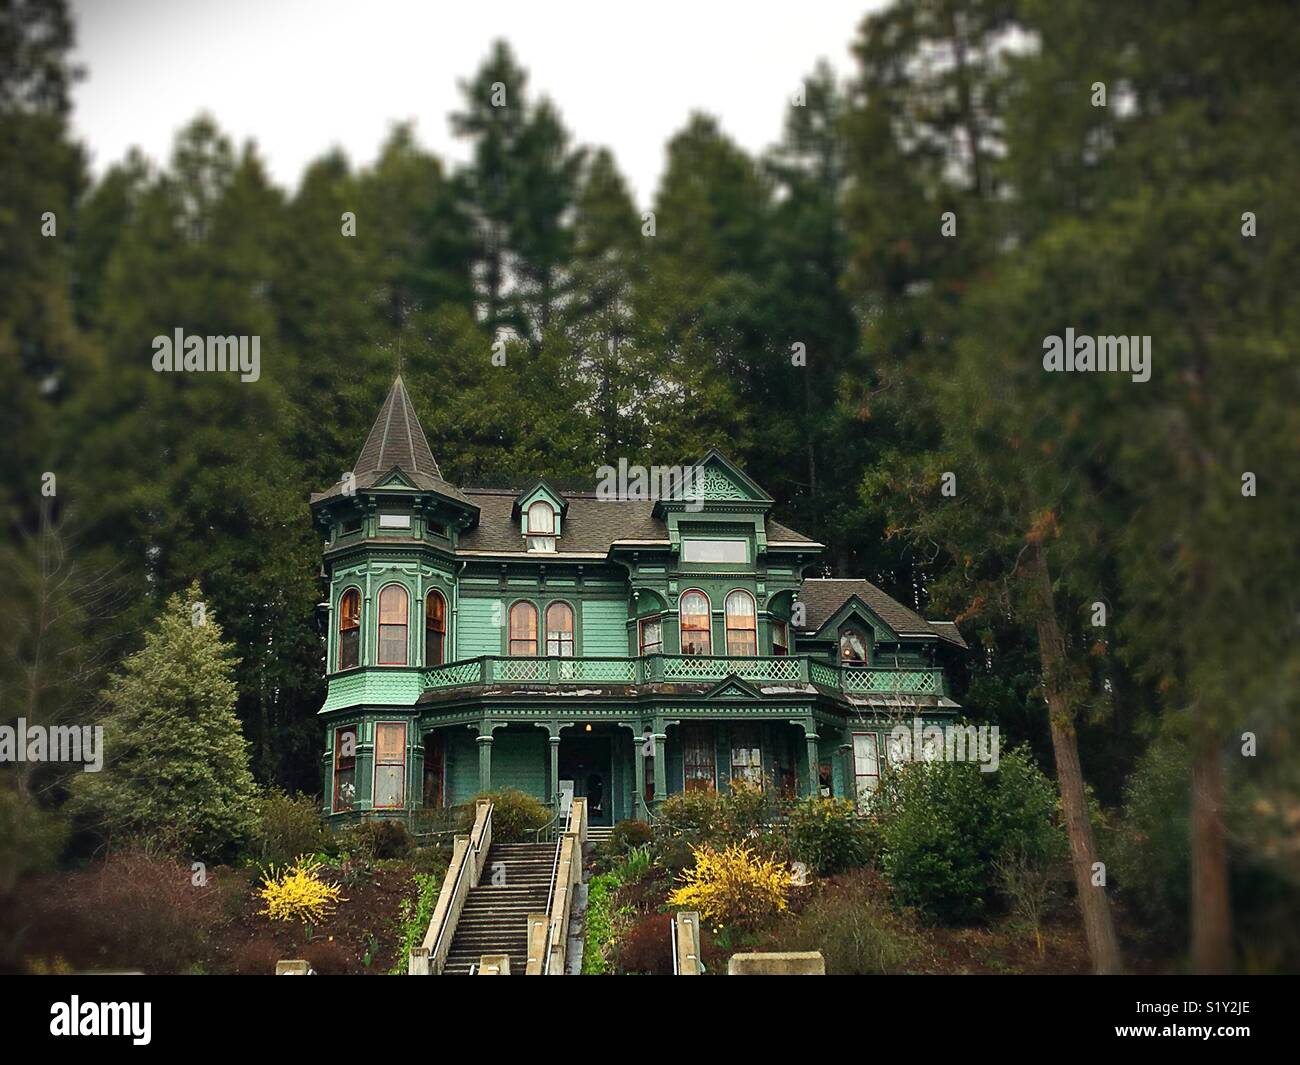 Shelton McMurphy Johnson House di Eugene, Oregon, Stati Uniti d'America. Immagini Stock